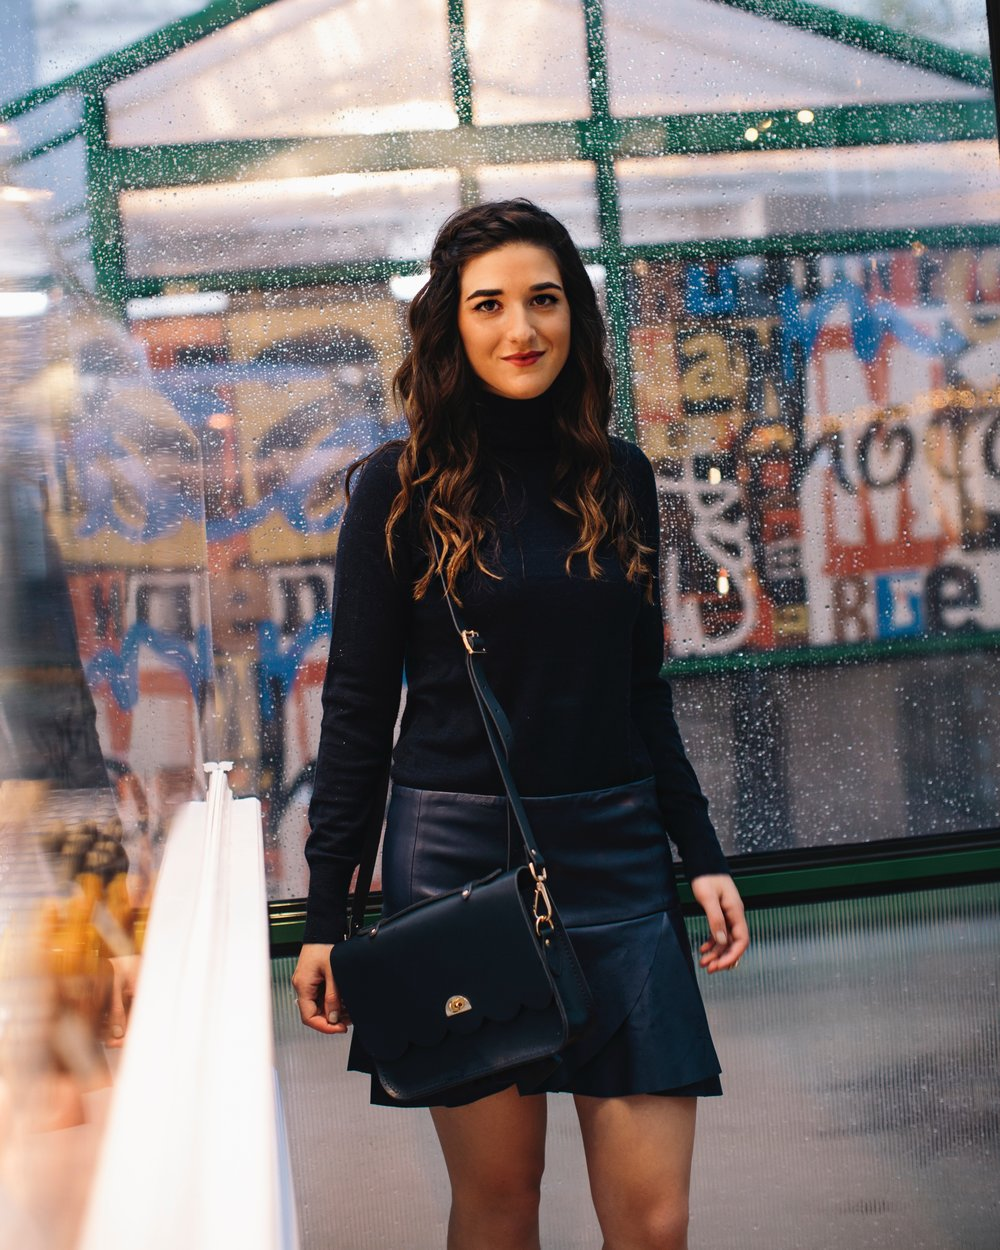 All Navy Look 20 Tips To Build Your Instagram Following Louboutins & Love Fashion Blog Esther Santer NYC Street Style Blogger Outfit OOTD Trendy Cambridge Satchel Bag Purse Girl Women Hair Shoes Leopard Booties Turtleneck Accessory Rings Neutral Skirt.jpg